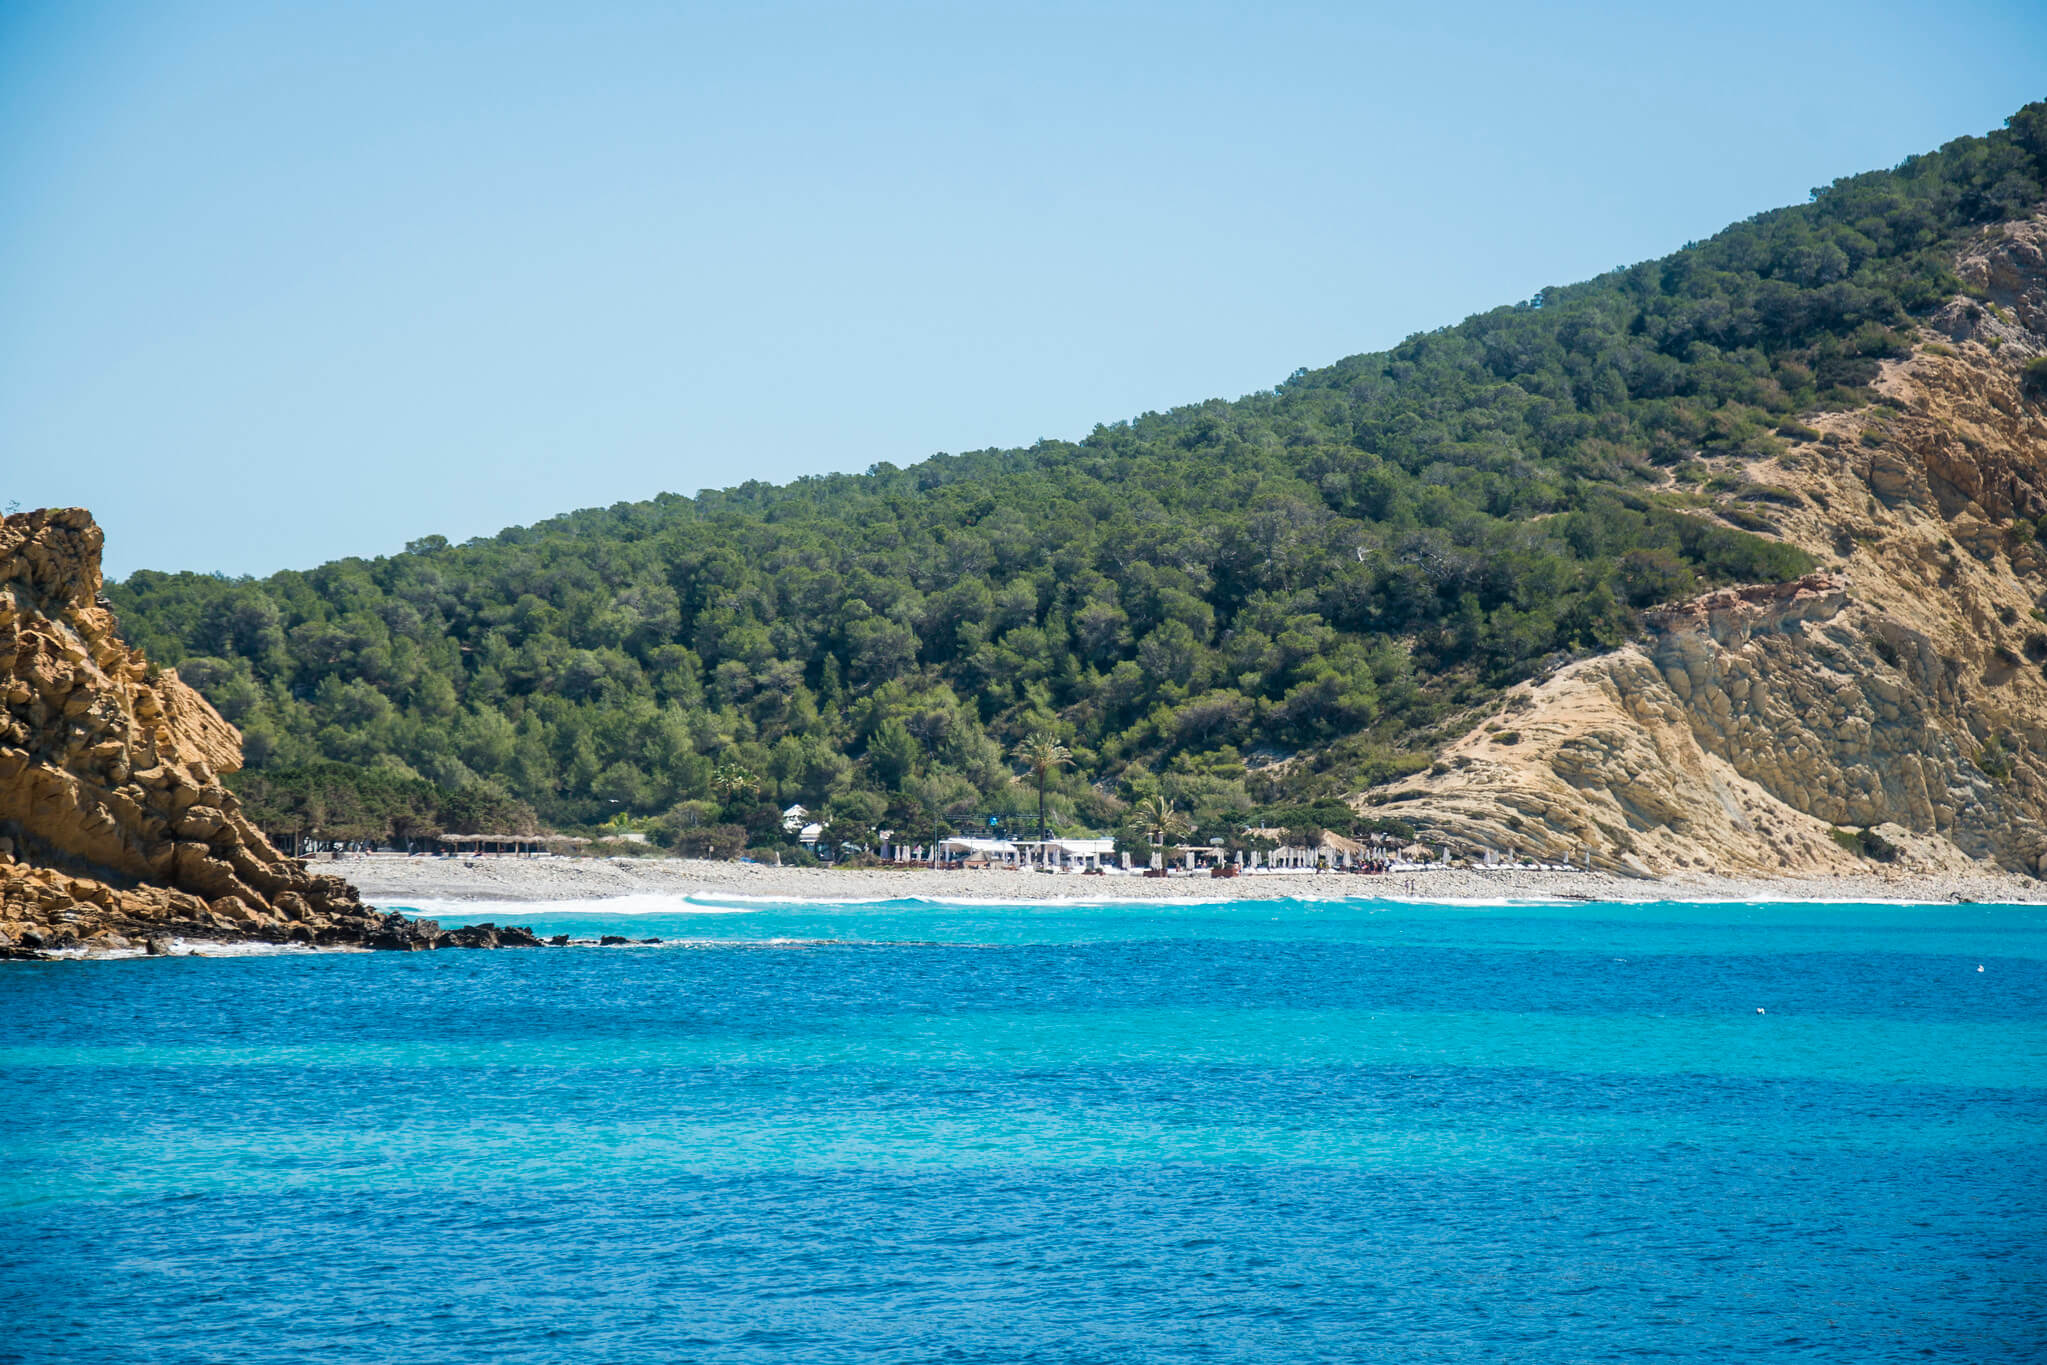 https://www.white-ibiza.com/wp-content/uploads/2020/03/ibiza-beaches-cala-jondal-01.jpg